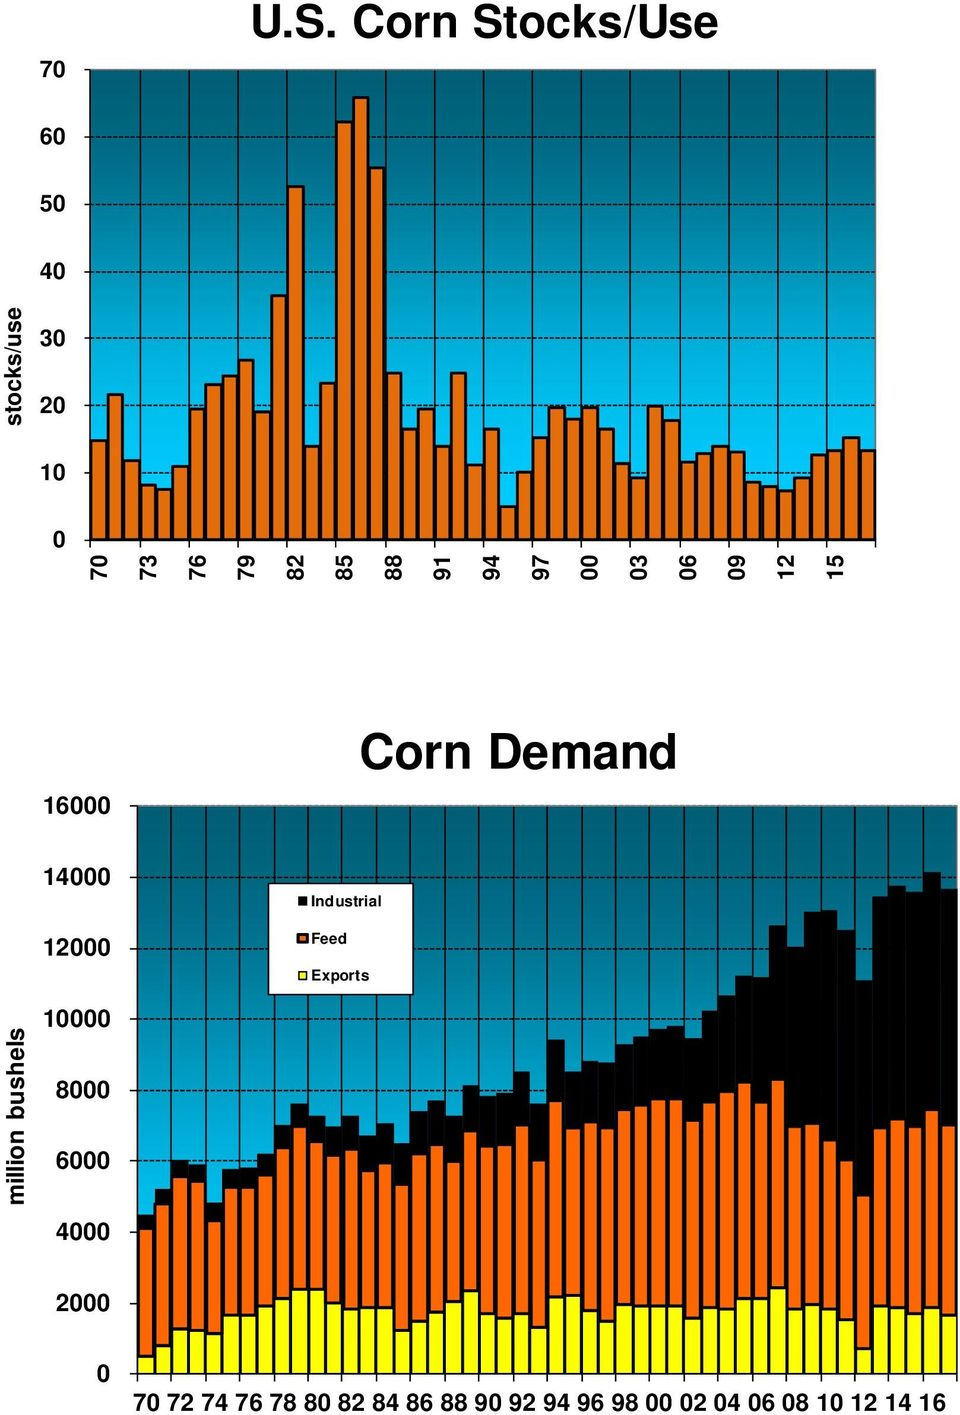 00 03 06 09 12 stocks/use 15 16000 Corn Demand 14000 12000